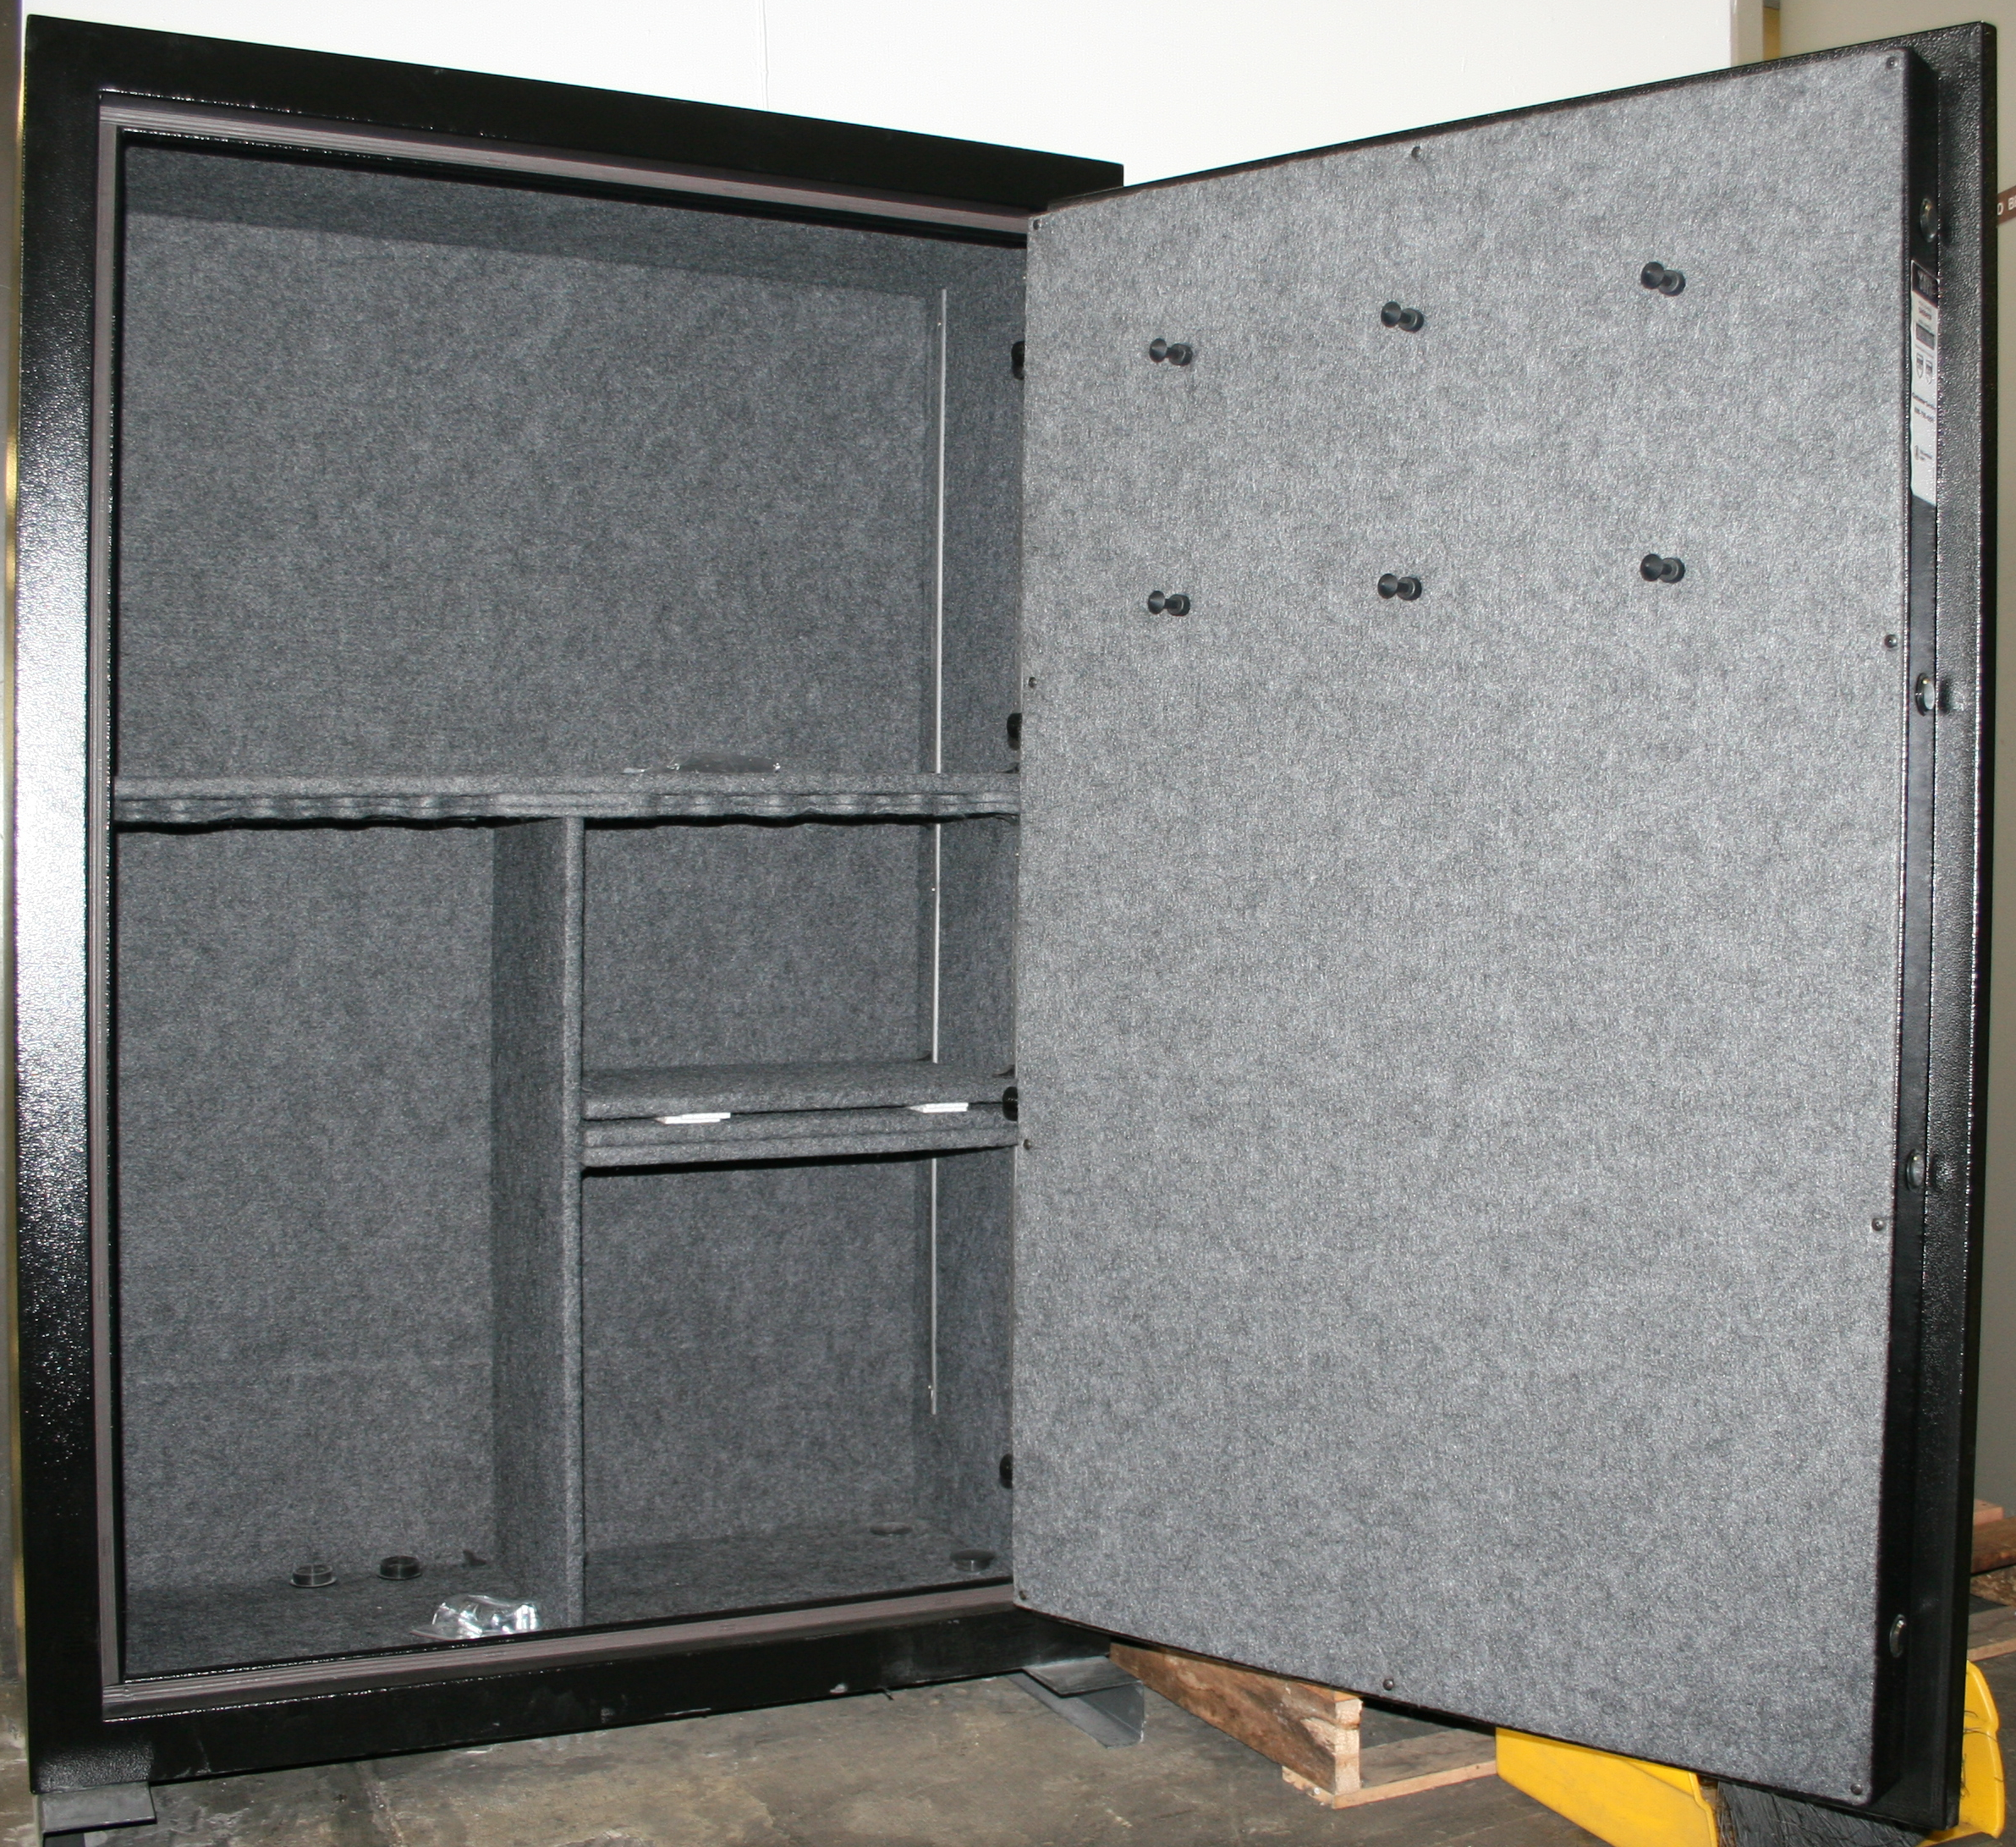 Electronic cabinets, safes, wine coolers, apple products